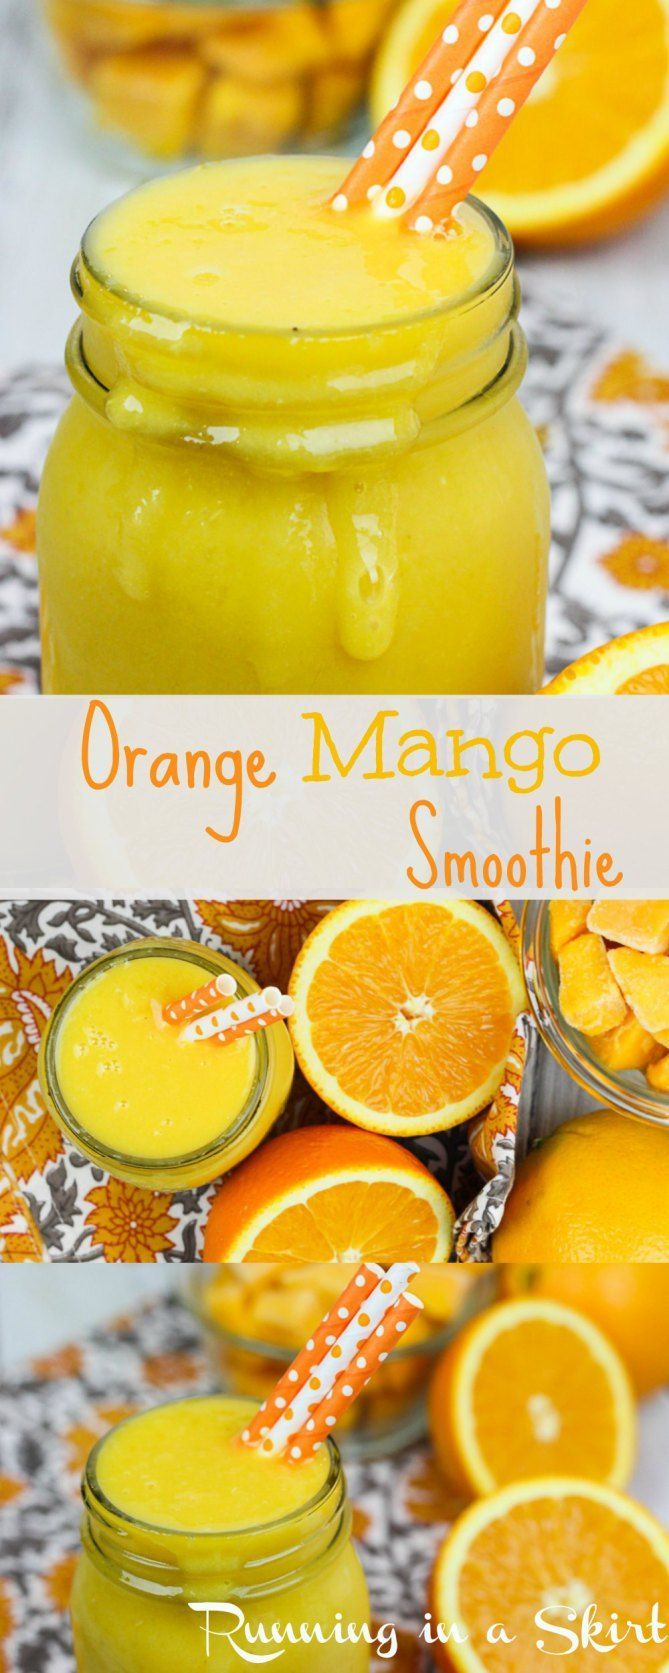 Sunshine in a cup! Healthy Orange Mango Smoothie Recipe. Smooth vegan smoothie with fruit including banannas. Only 4 ingredients!   Running in a Skirt